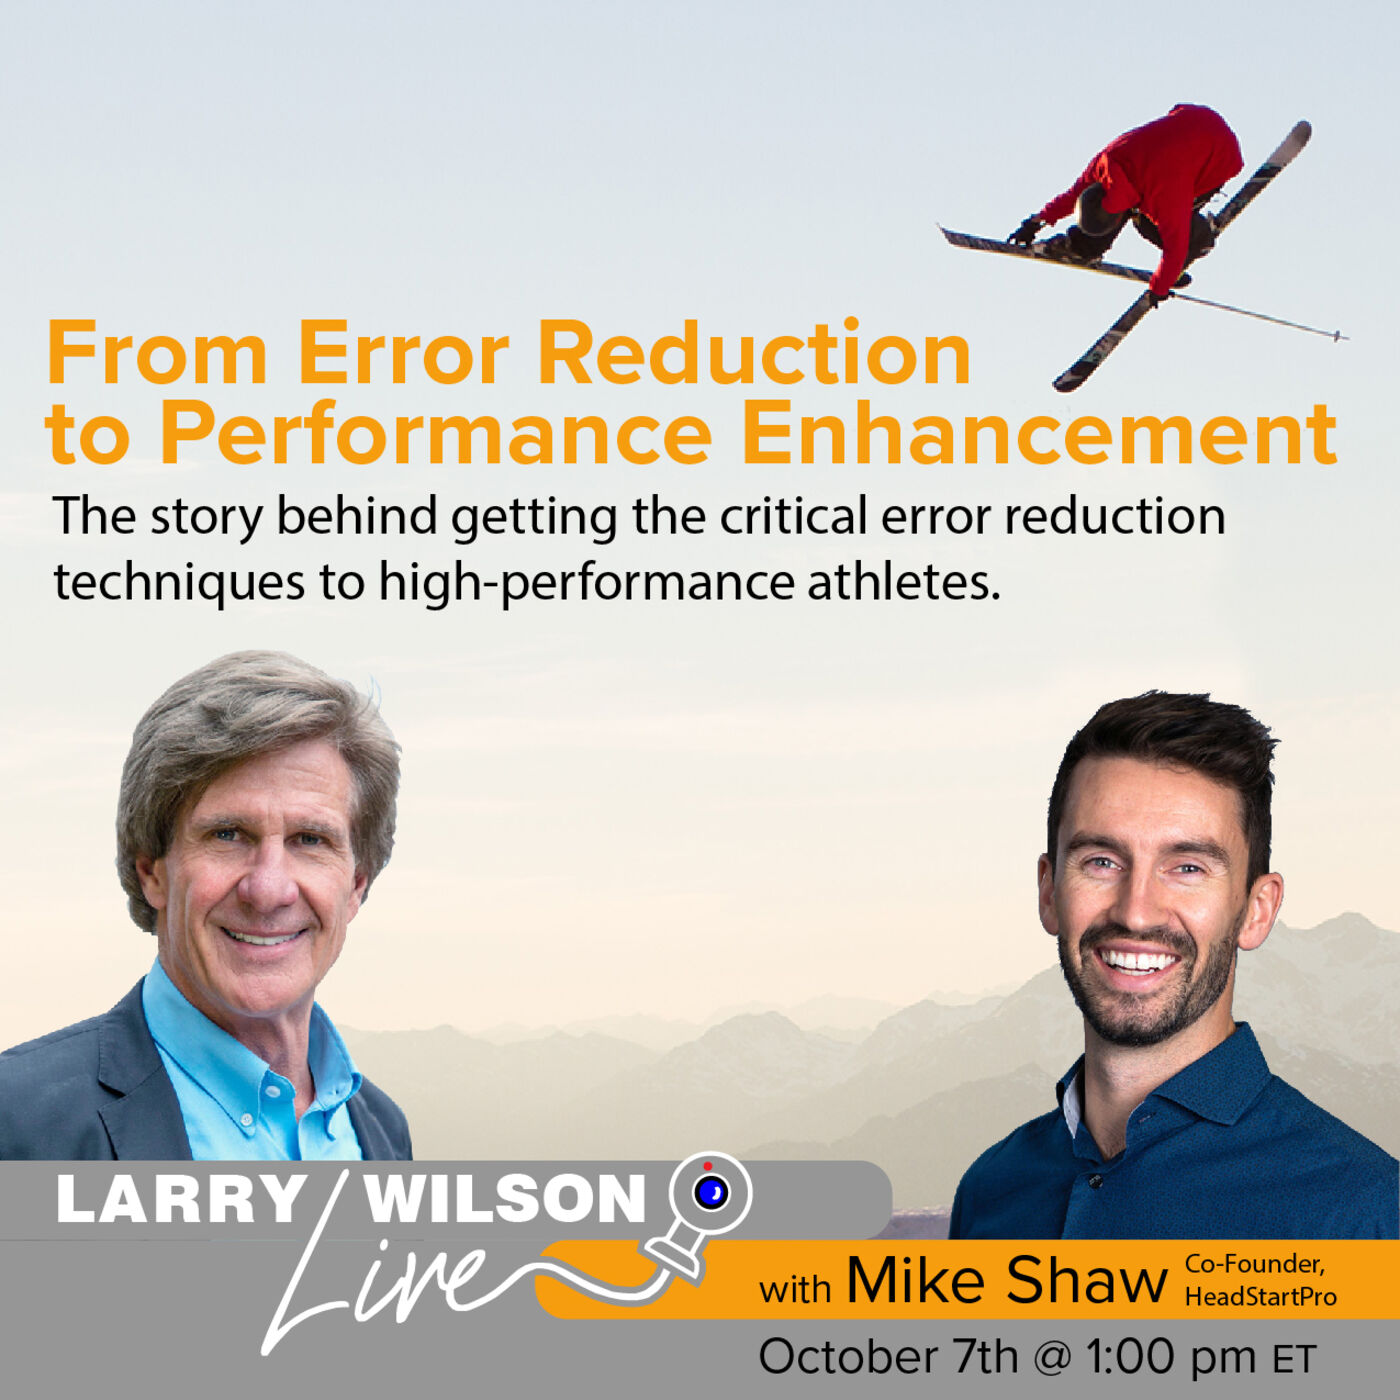 From Error Reduction to Performance Enhancement with Mike Shaw